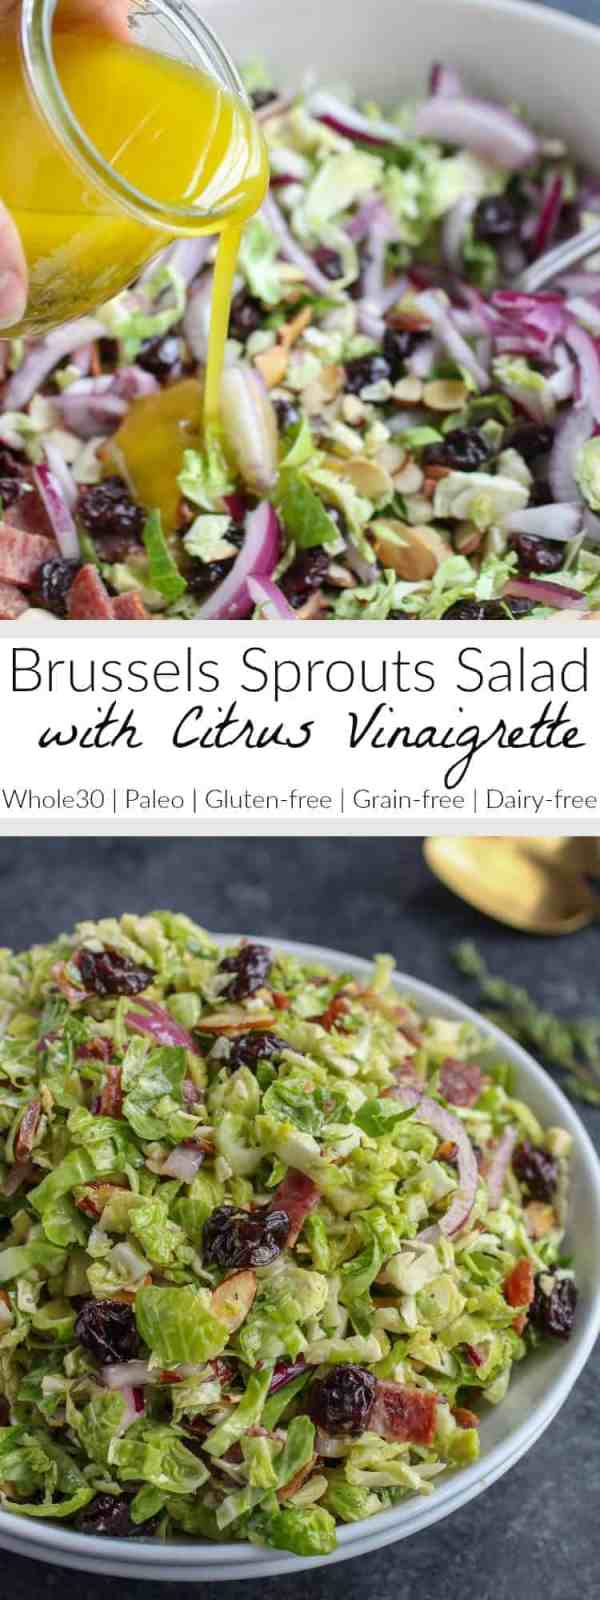 Shredded Brussels Sprouts with Citrus Vinaigrette | whole30 salad recipes | whole30 dressing recipes | whole30 side dishes | healthy side dish recipes | gluten-free side dishes | brussels sprouts recipe ideas | paleo side dishes | grain-free side dishes | dairy-free side dishes || The Real Food Dietitians #brusselssproutssalad